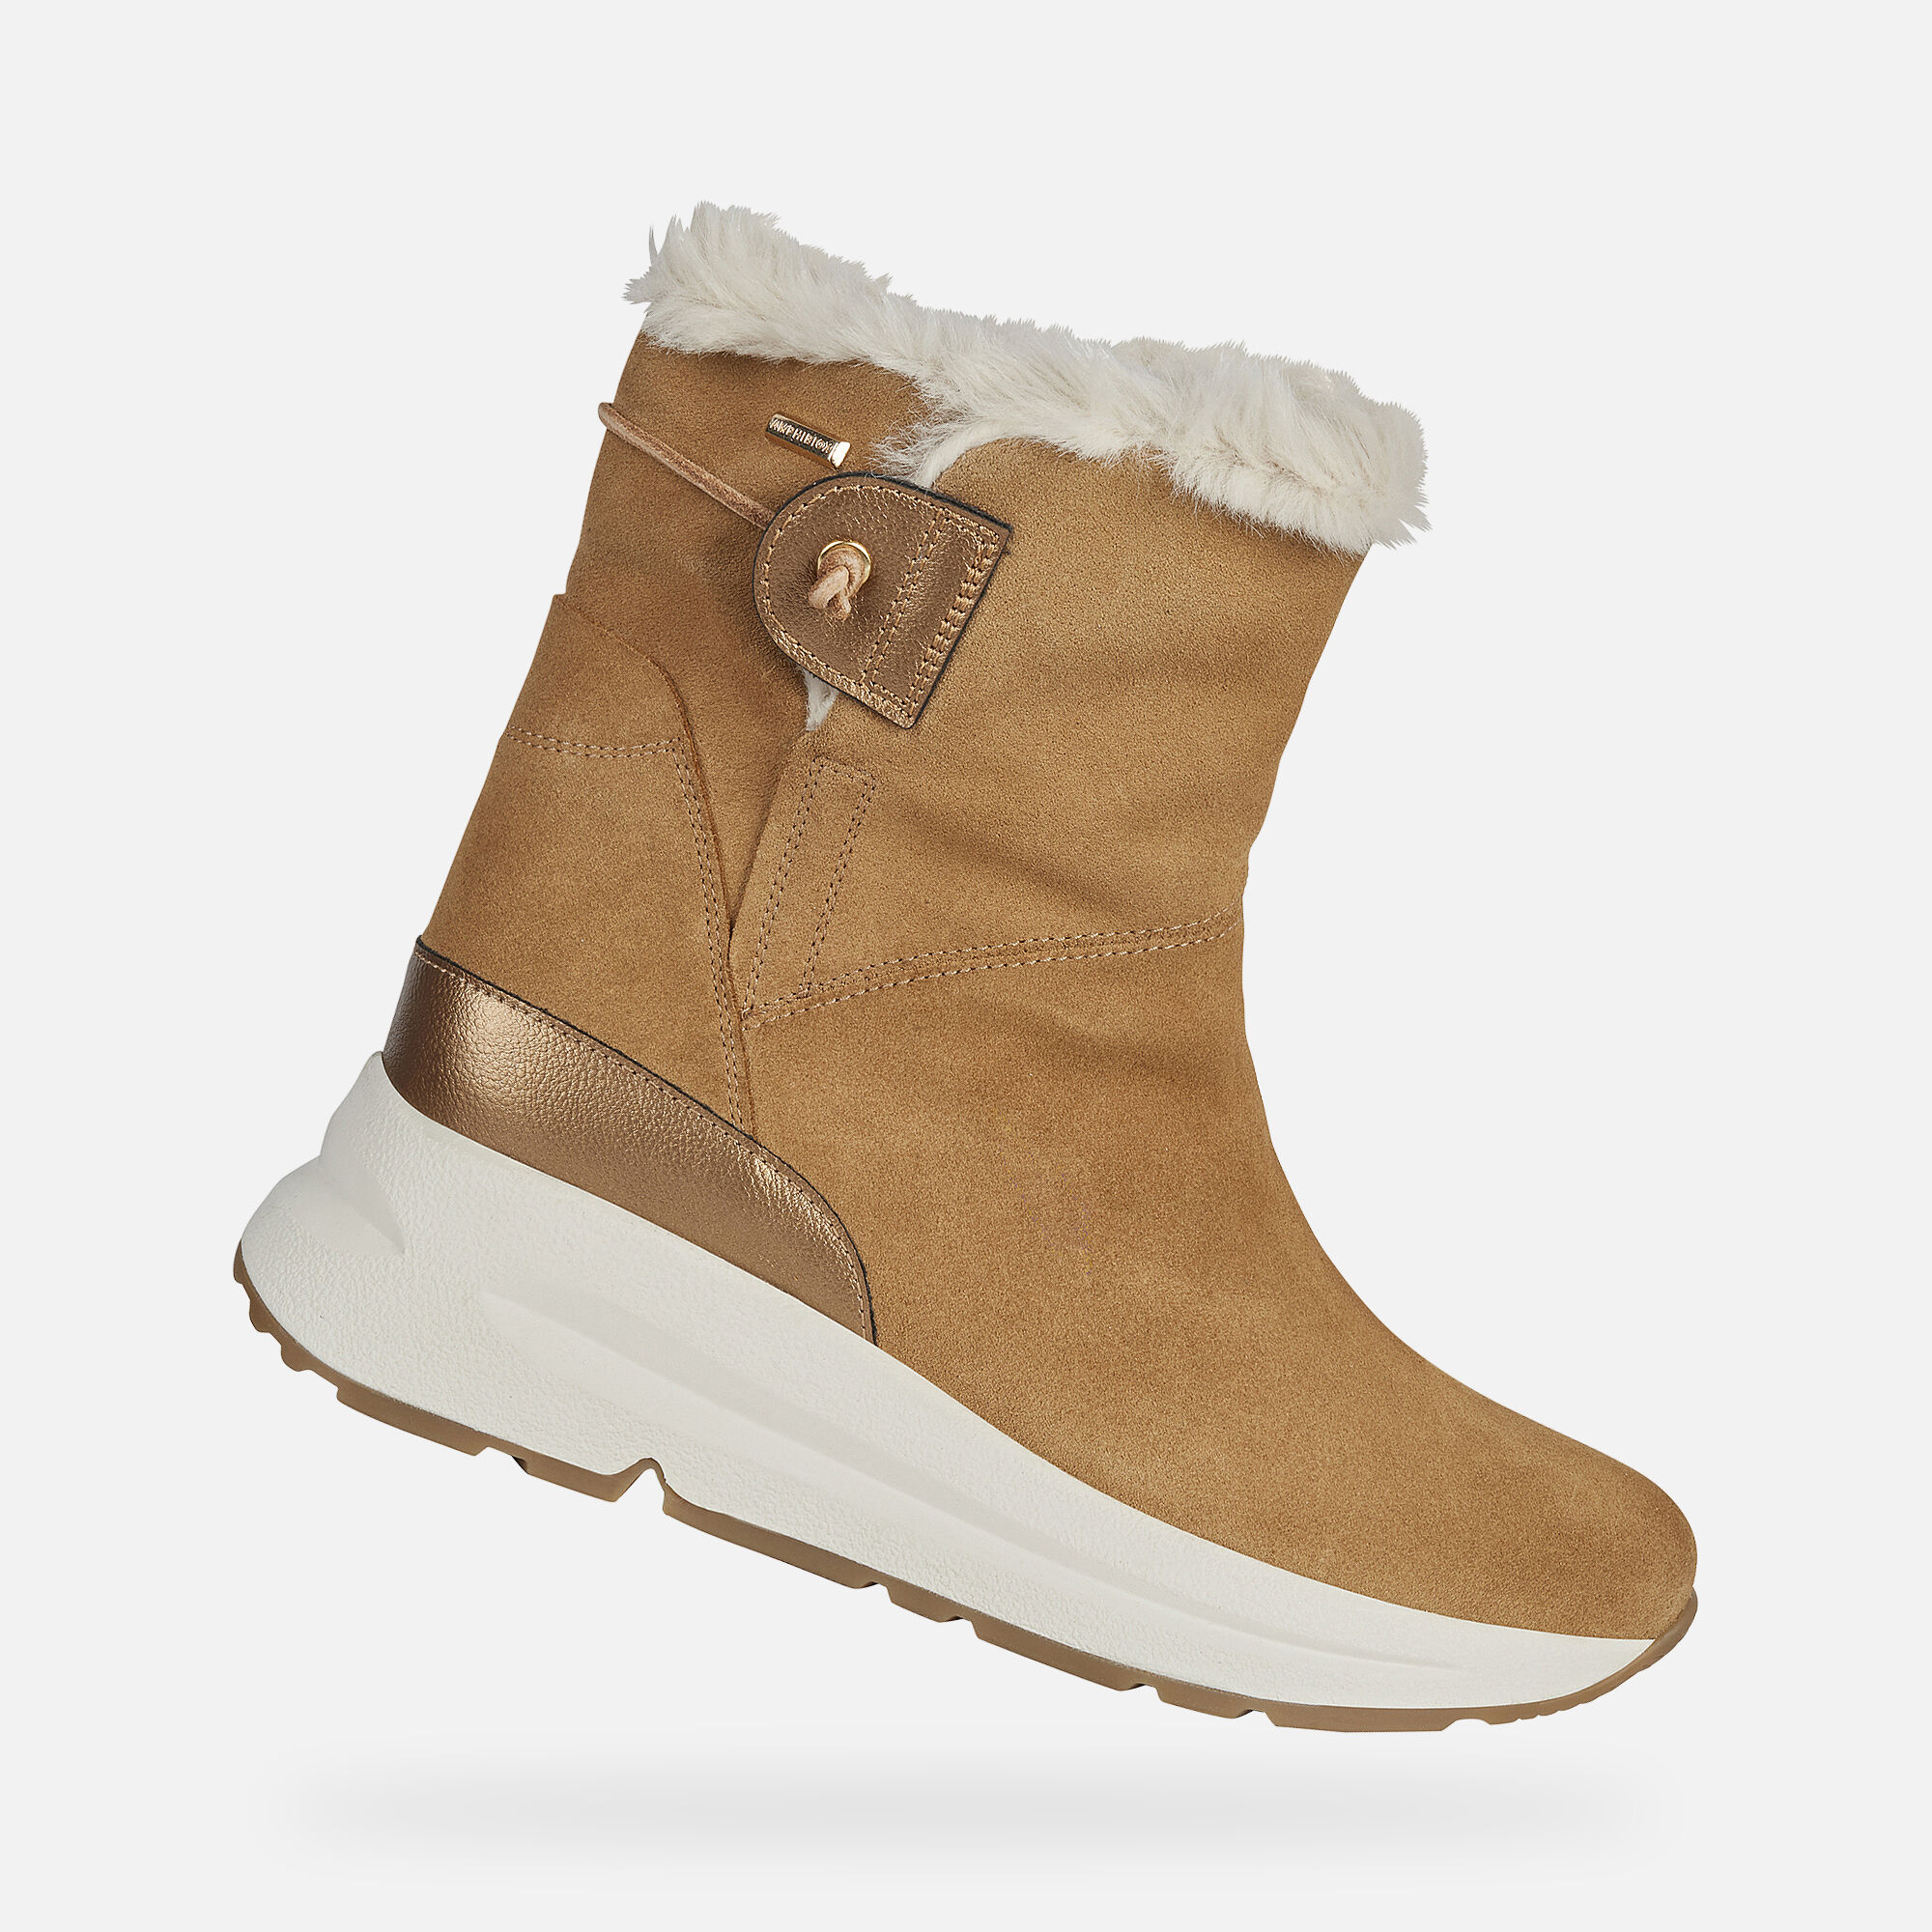 BACKSIE ABX WOMAN - ANKLE BOOTS from